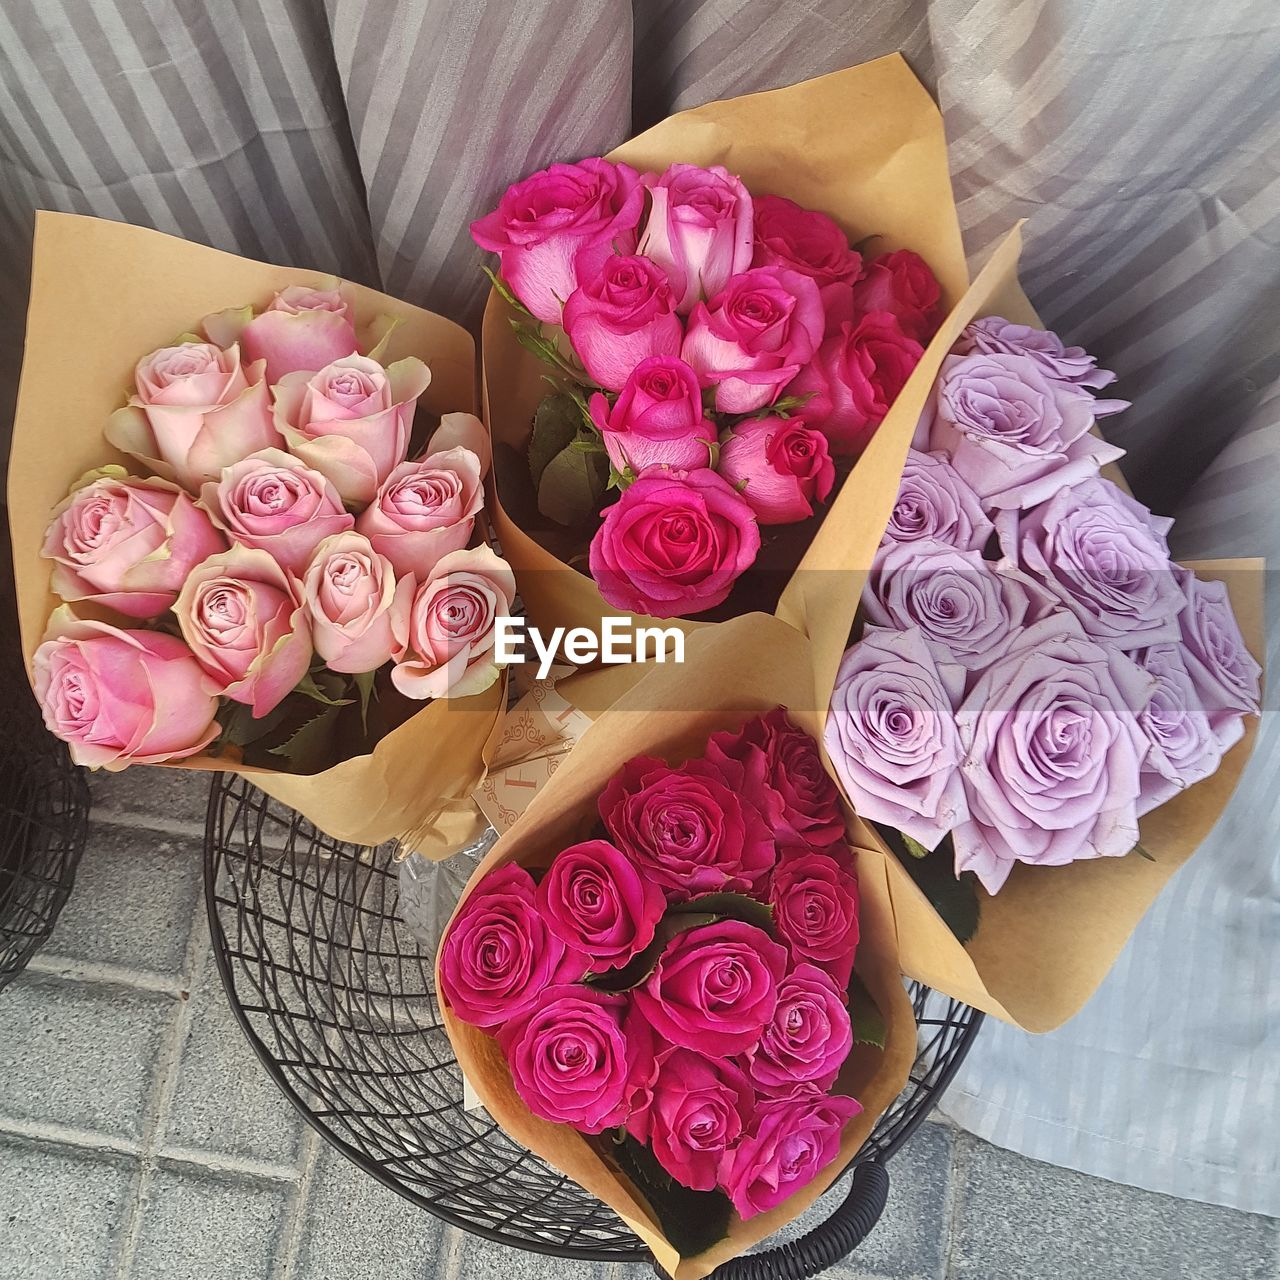 flower, flowering plant, pink color, rose, rose - flower, beauty in nature, plant, high angle view, vulnerability, inflorescence, flower head, fragility, petal, freshness, bouquet, flower arrangement, close-up, nature, no people, arrangement, bunch of flowers